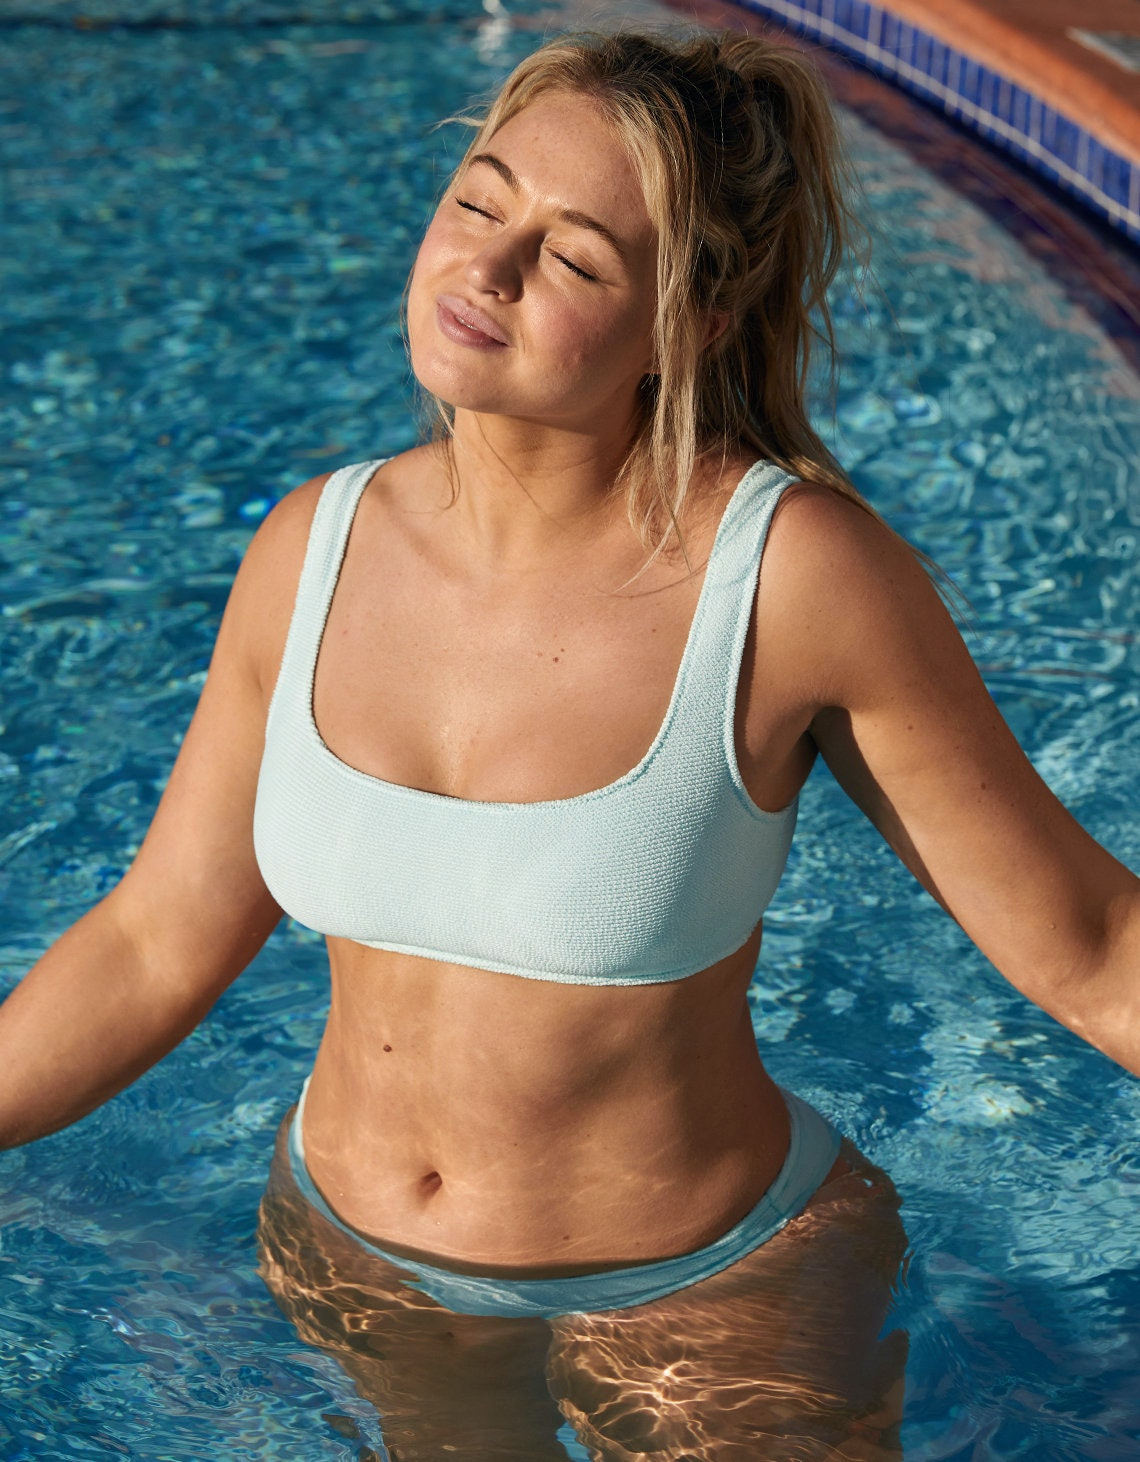 Aerie S Swim Sale Includes One Pieces Bikinis For Under 30